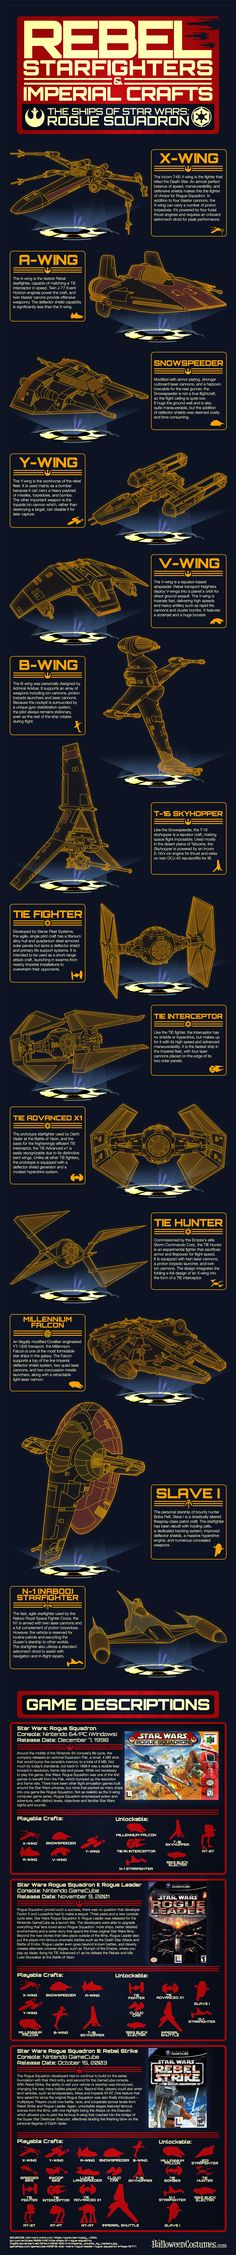 Rebel Starfighters & Imperial Crafts - The Ships Of Star Wars: Rogue Squadron #infographic